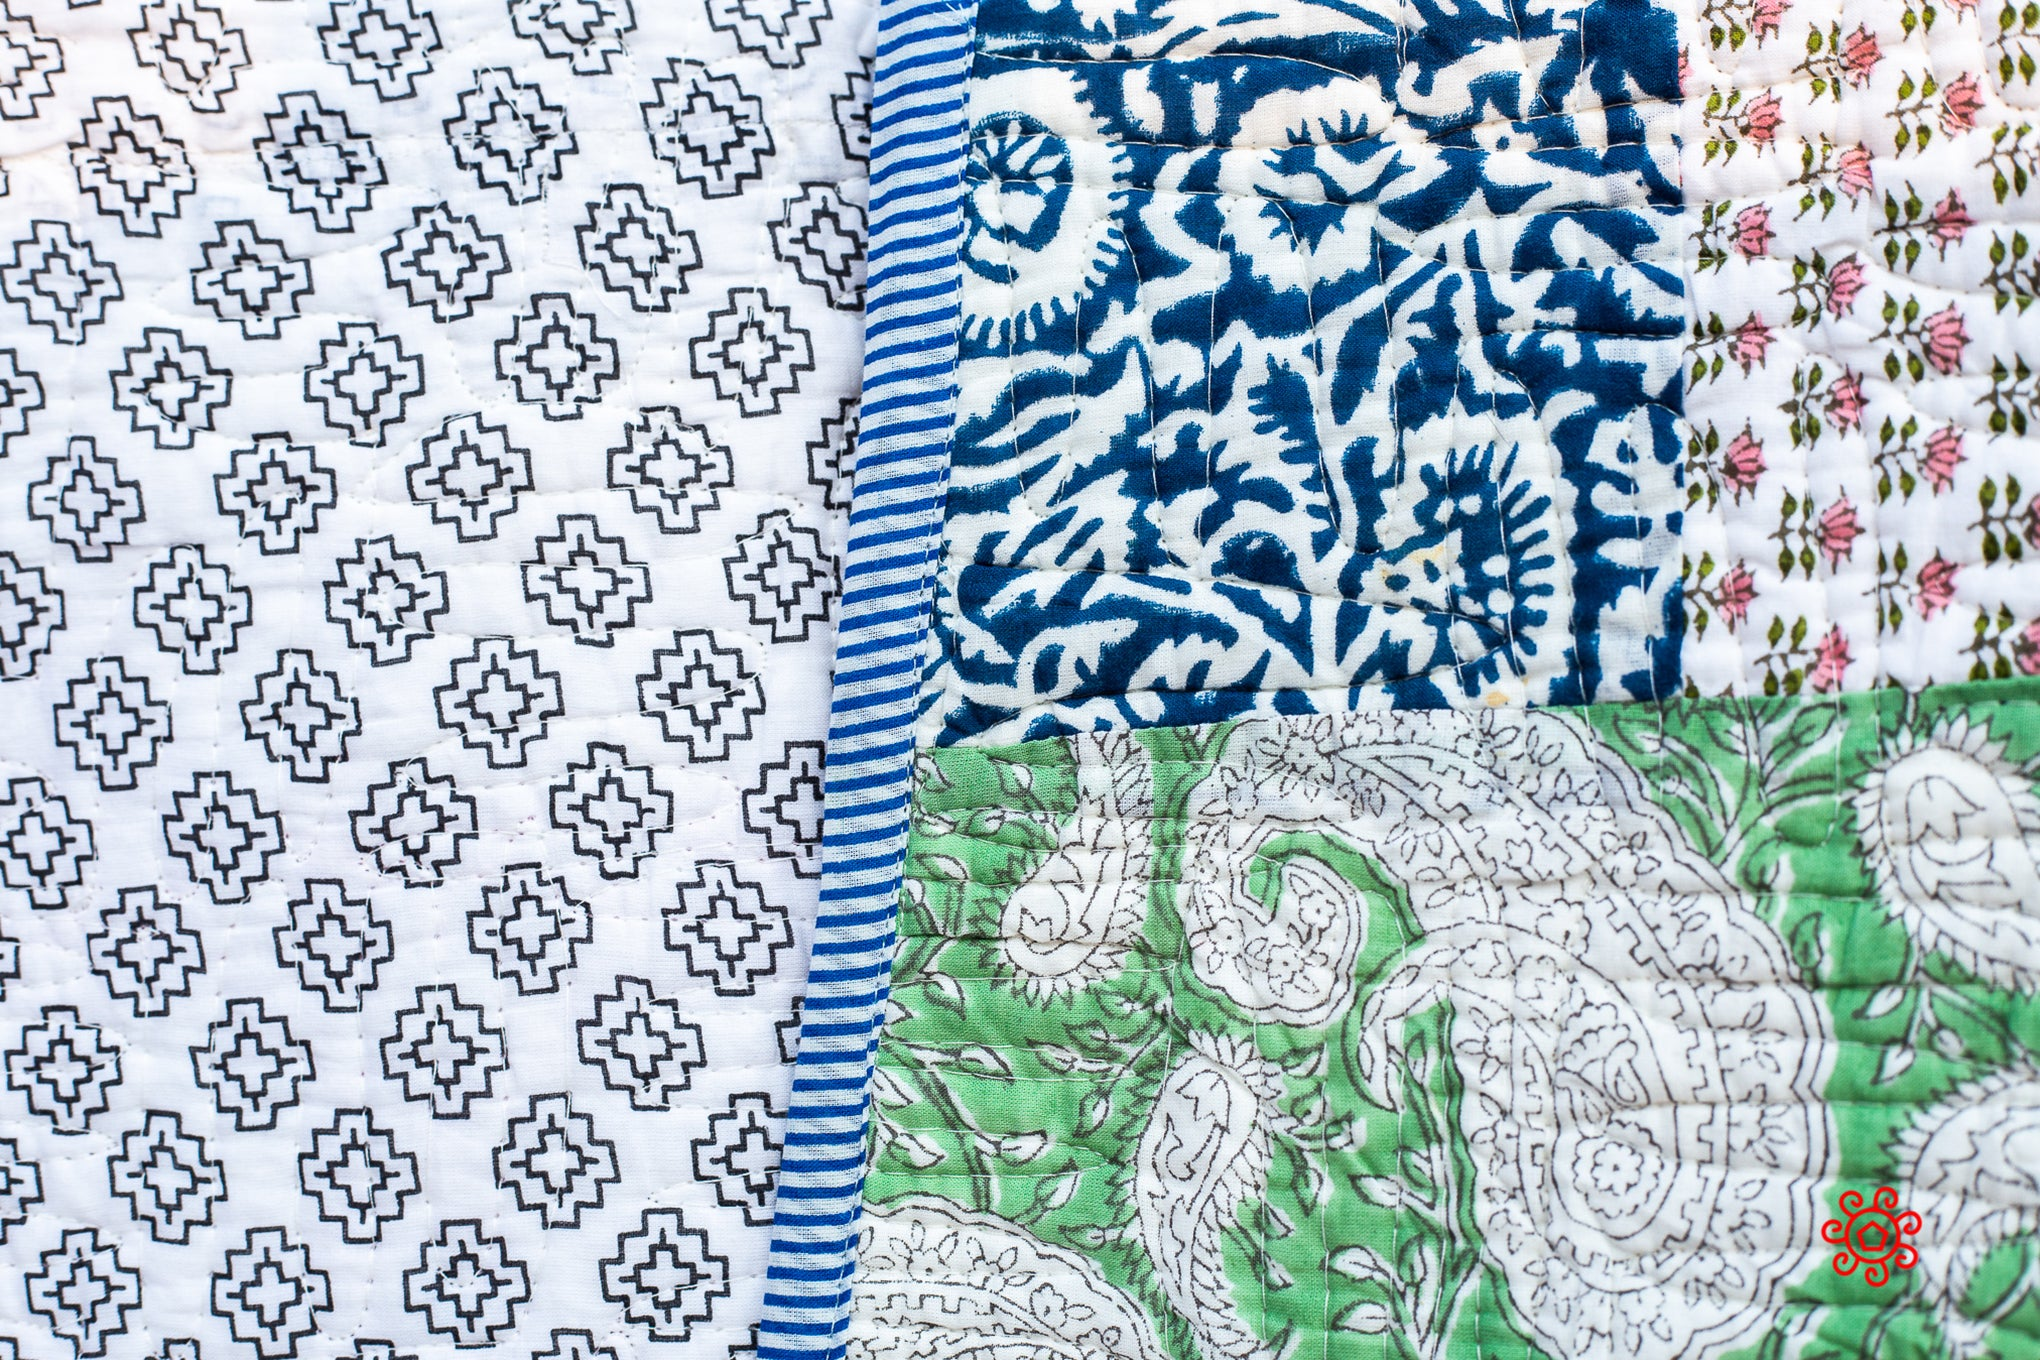 All Season Handmade Queen Quilt, Jaipuri Block printed, Cotton, Queen Bedspread, Cotton Throw, Quilted Bedcover, Room Decor, Patchwork